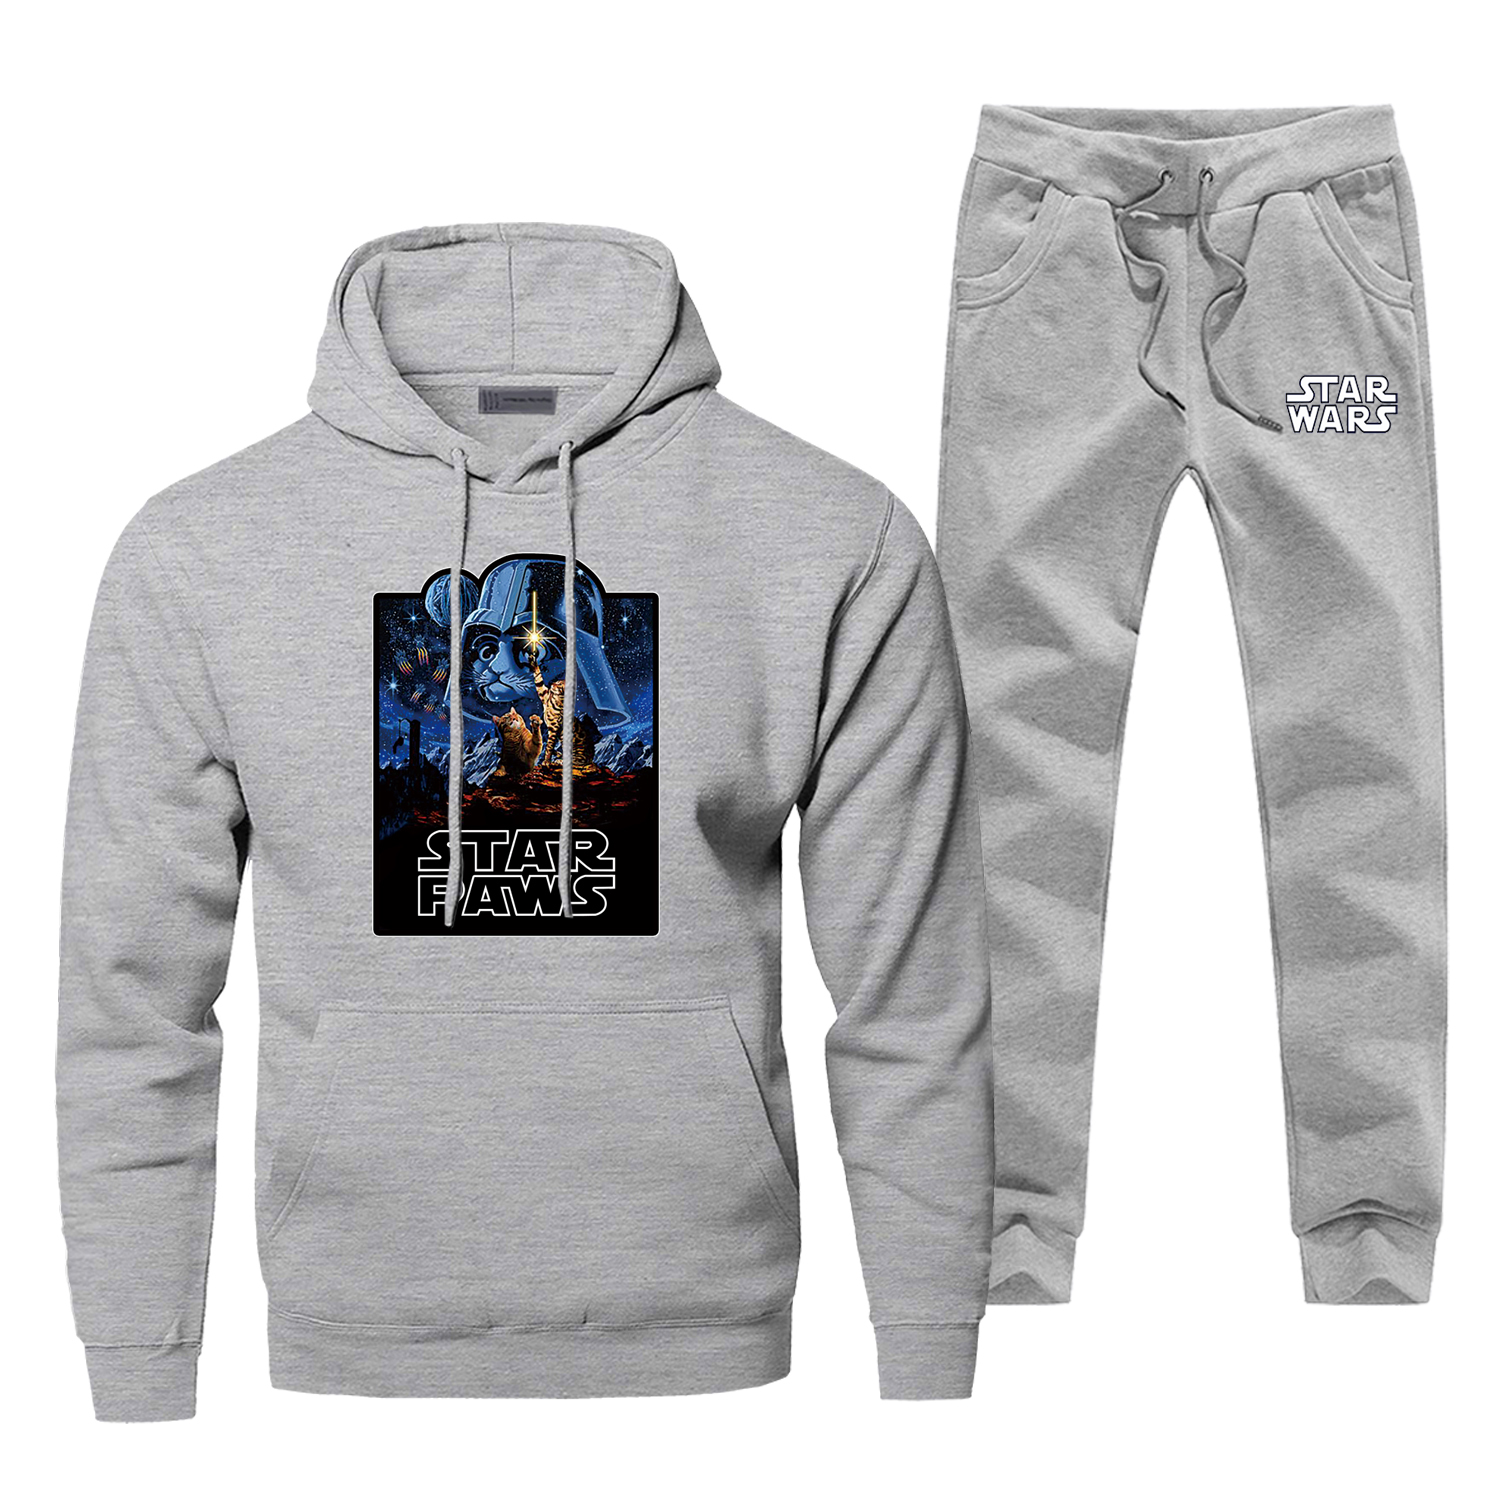 Star Wars Darth Vader Hoodies Pullover Pants Set Men Sets Suit Selfie Stormtrooper Your Father Hoody Sweatshirt 2 PCS Tracksuit